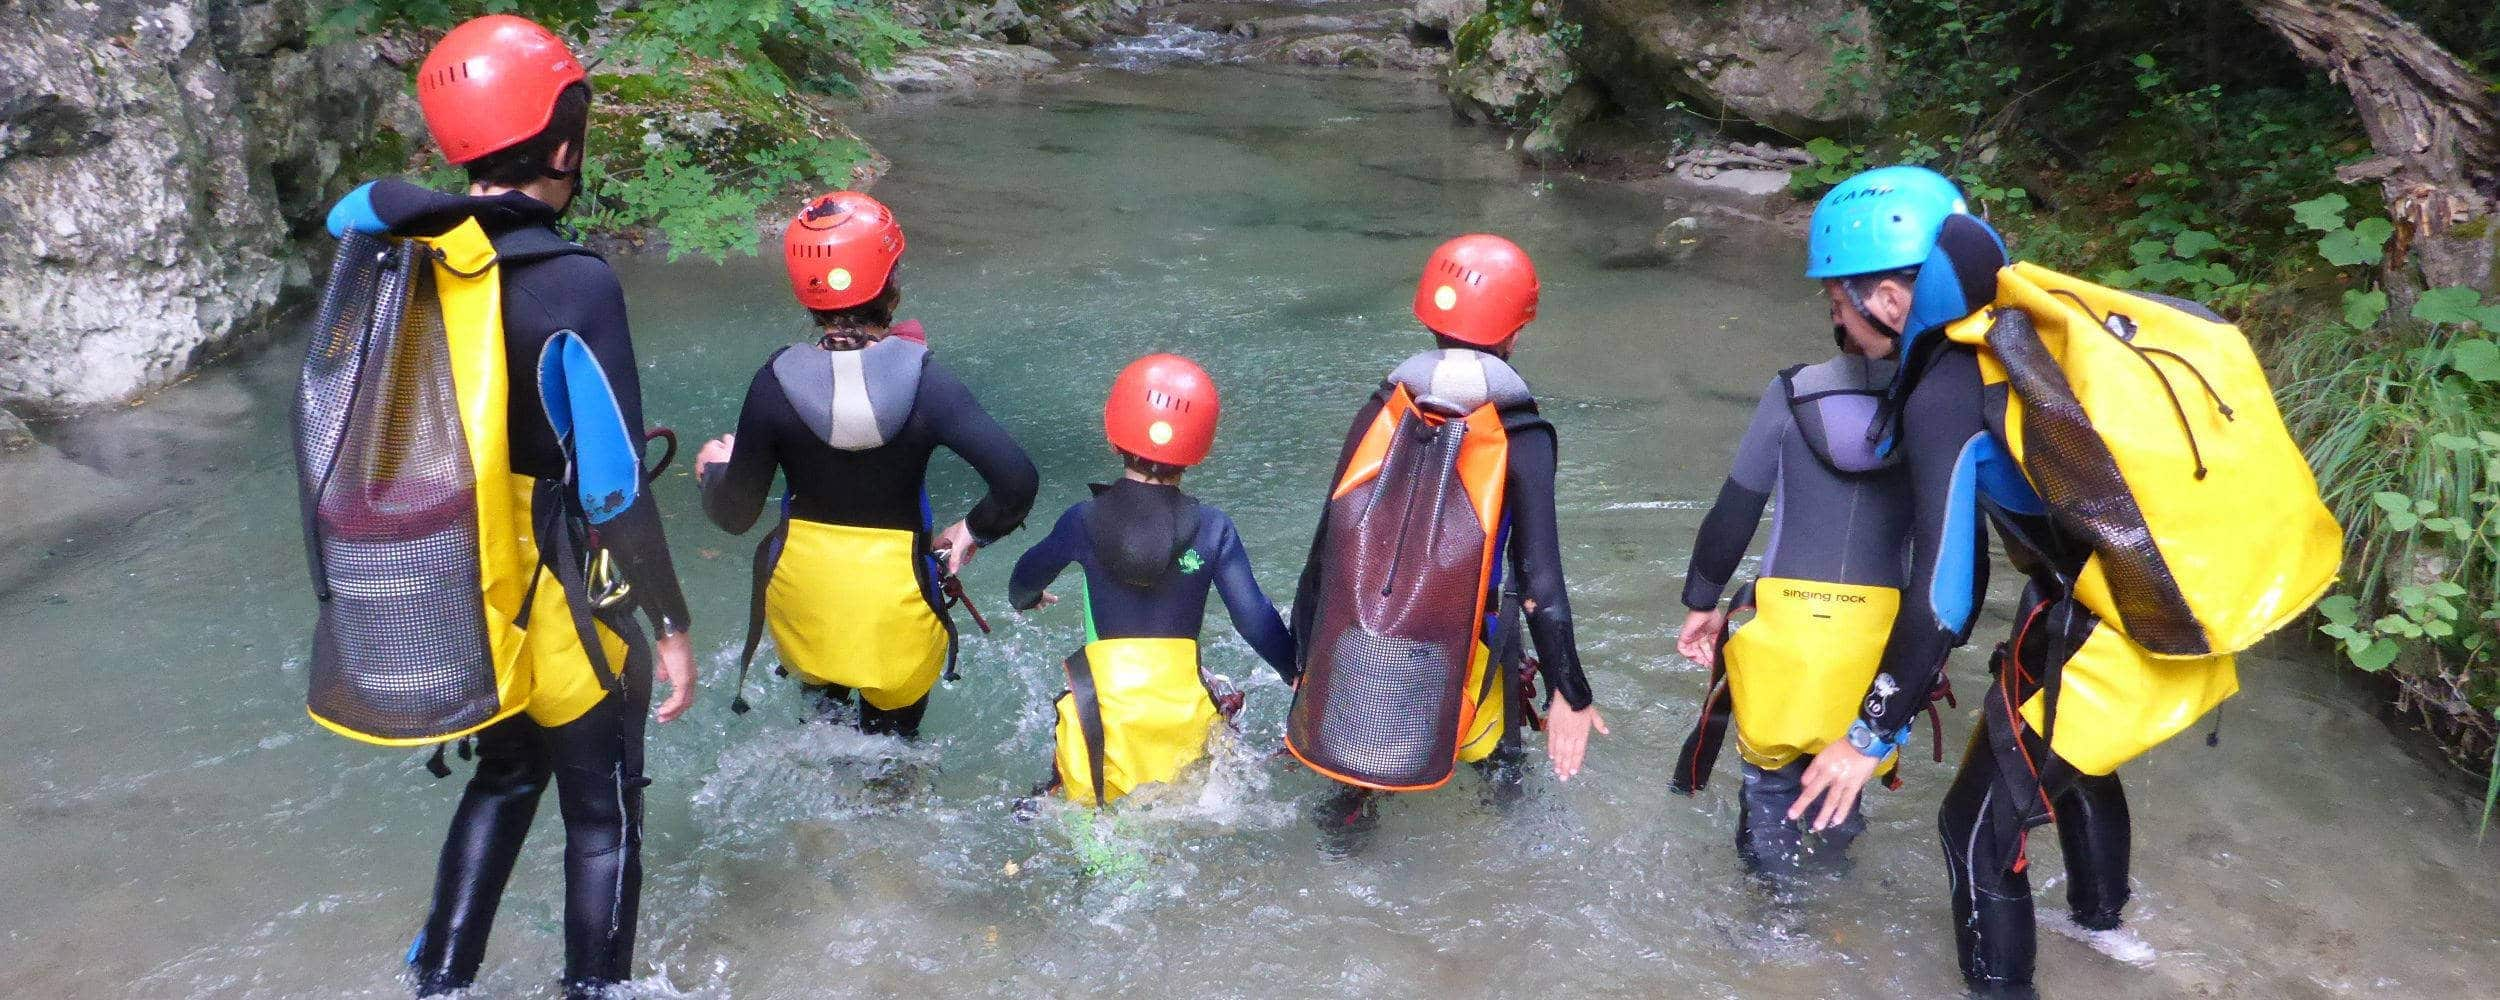 Kids Group Canyoning Loup Grasse Vence